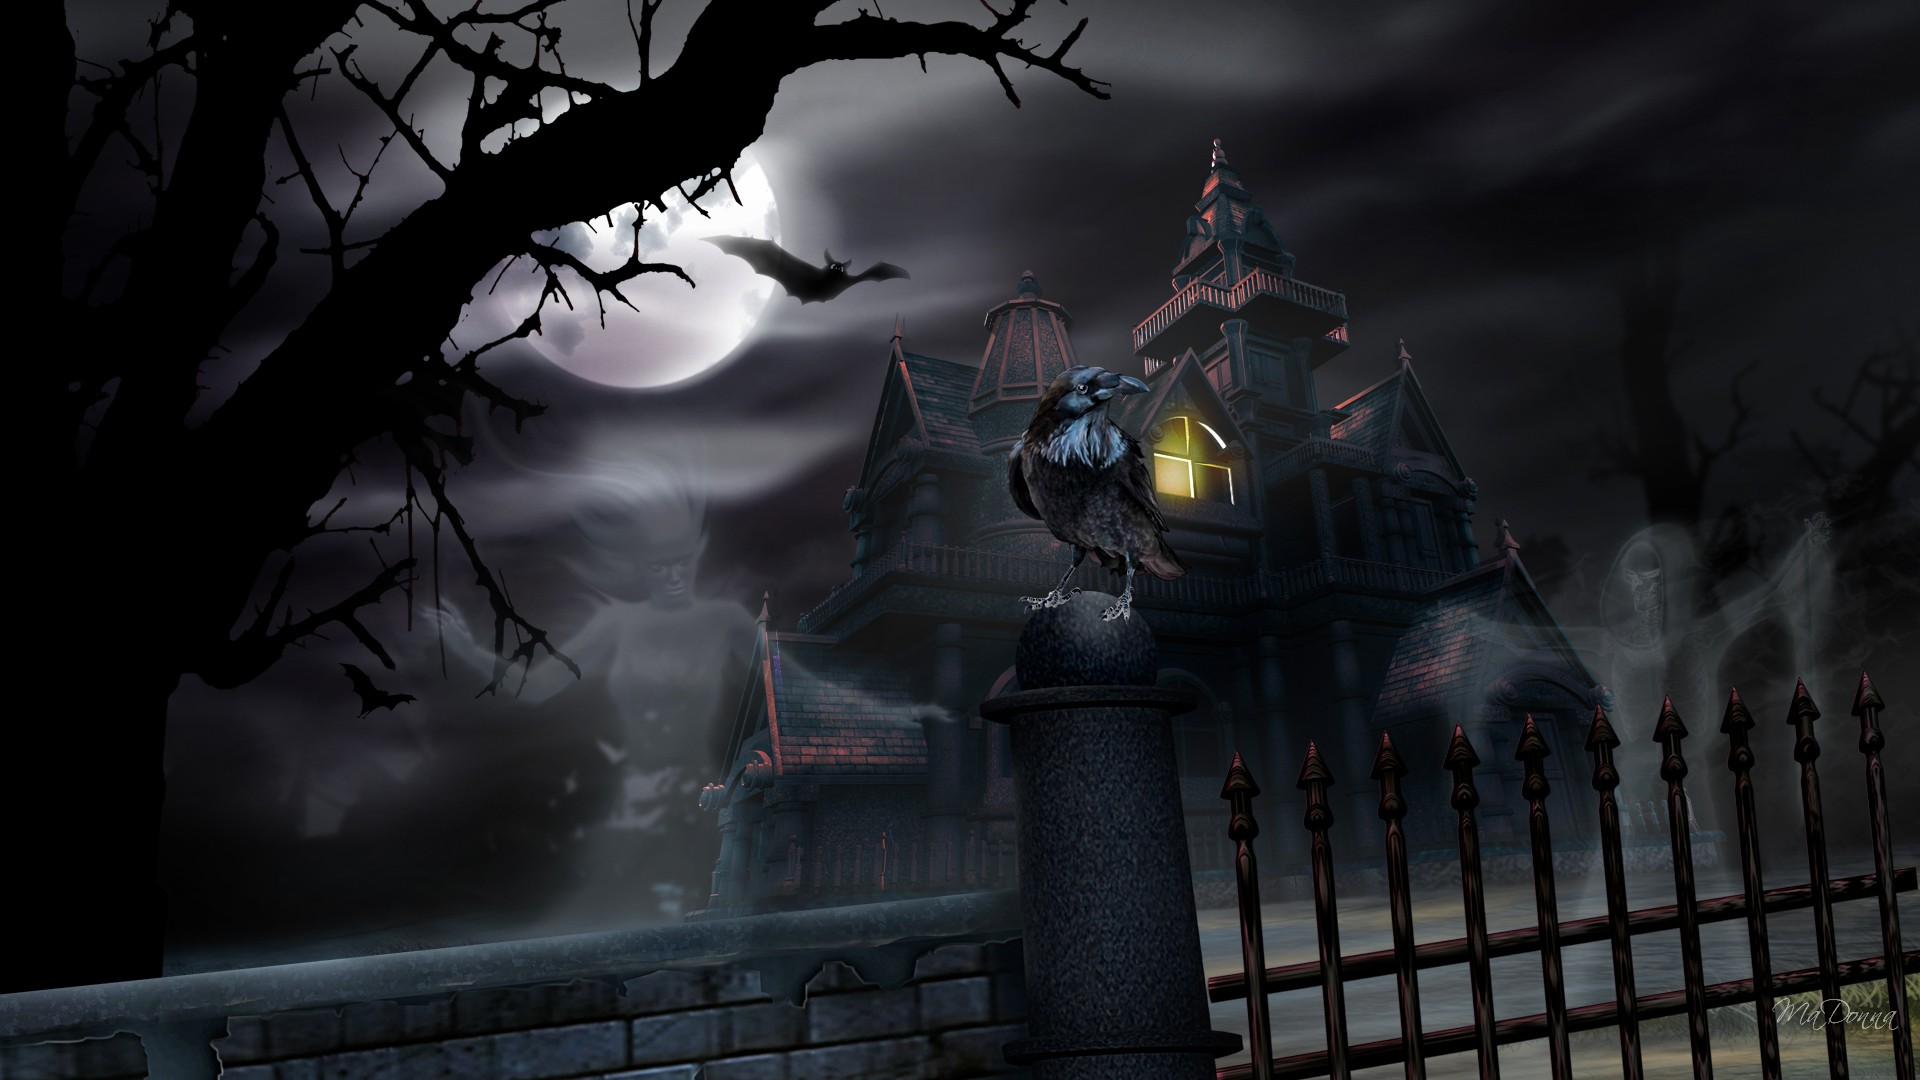 Cute Satanic Wallpaper Jesus Goes Trick Or Treating Obscurity Lost